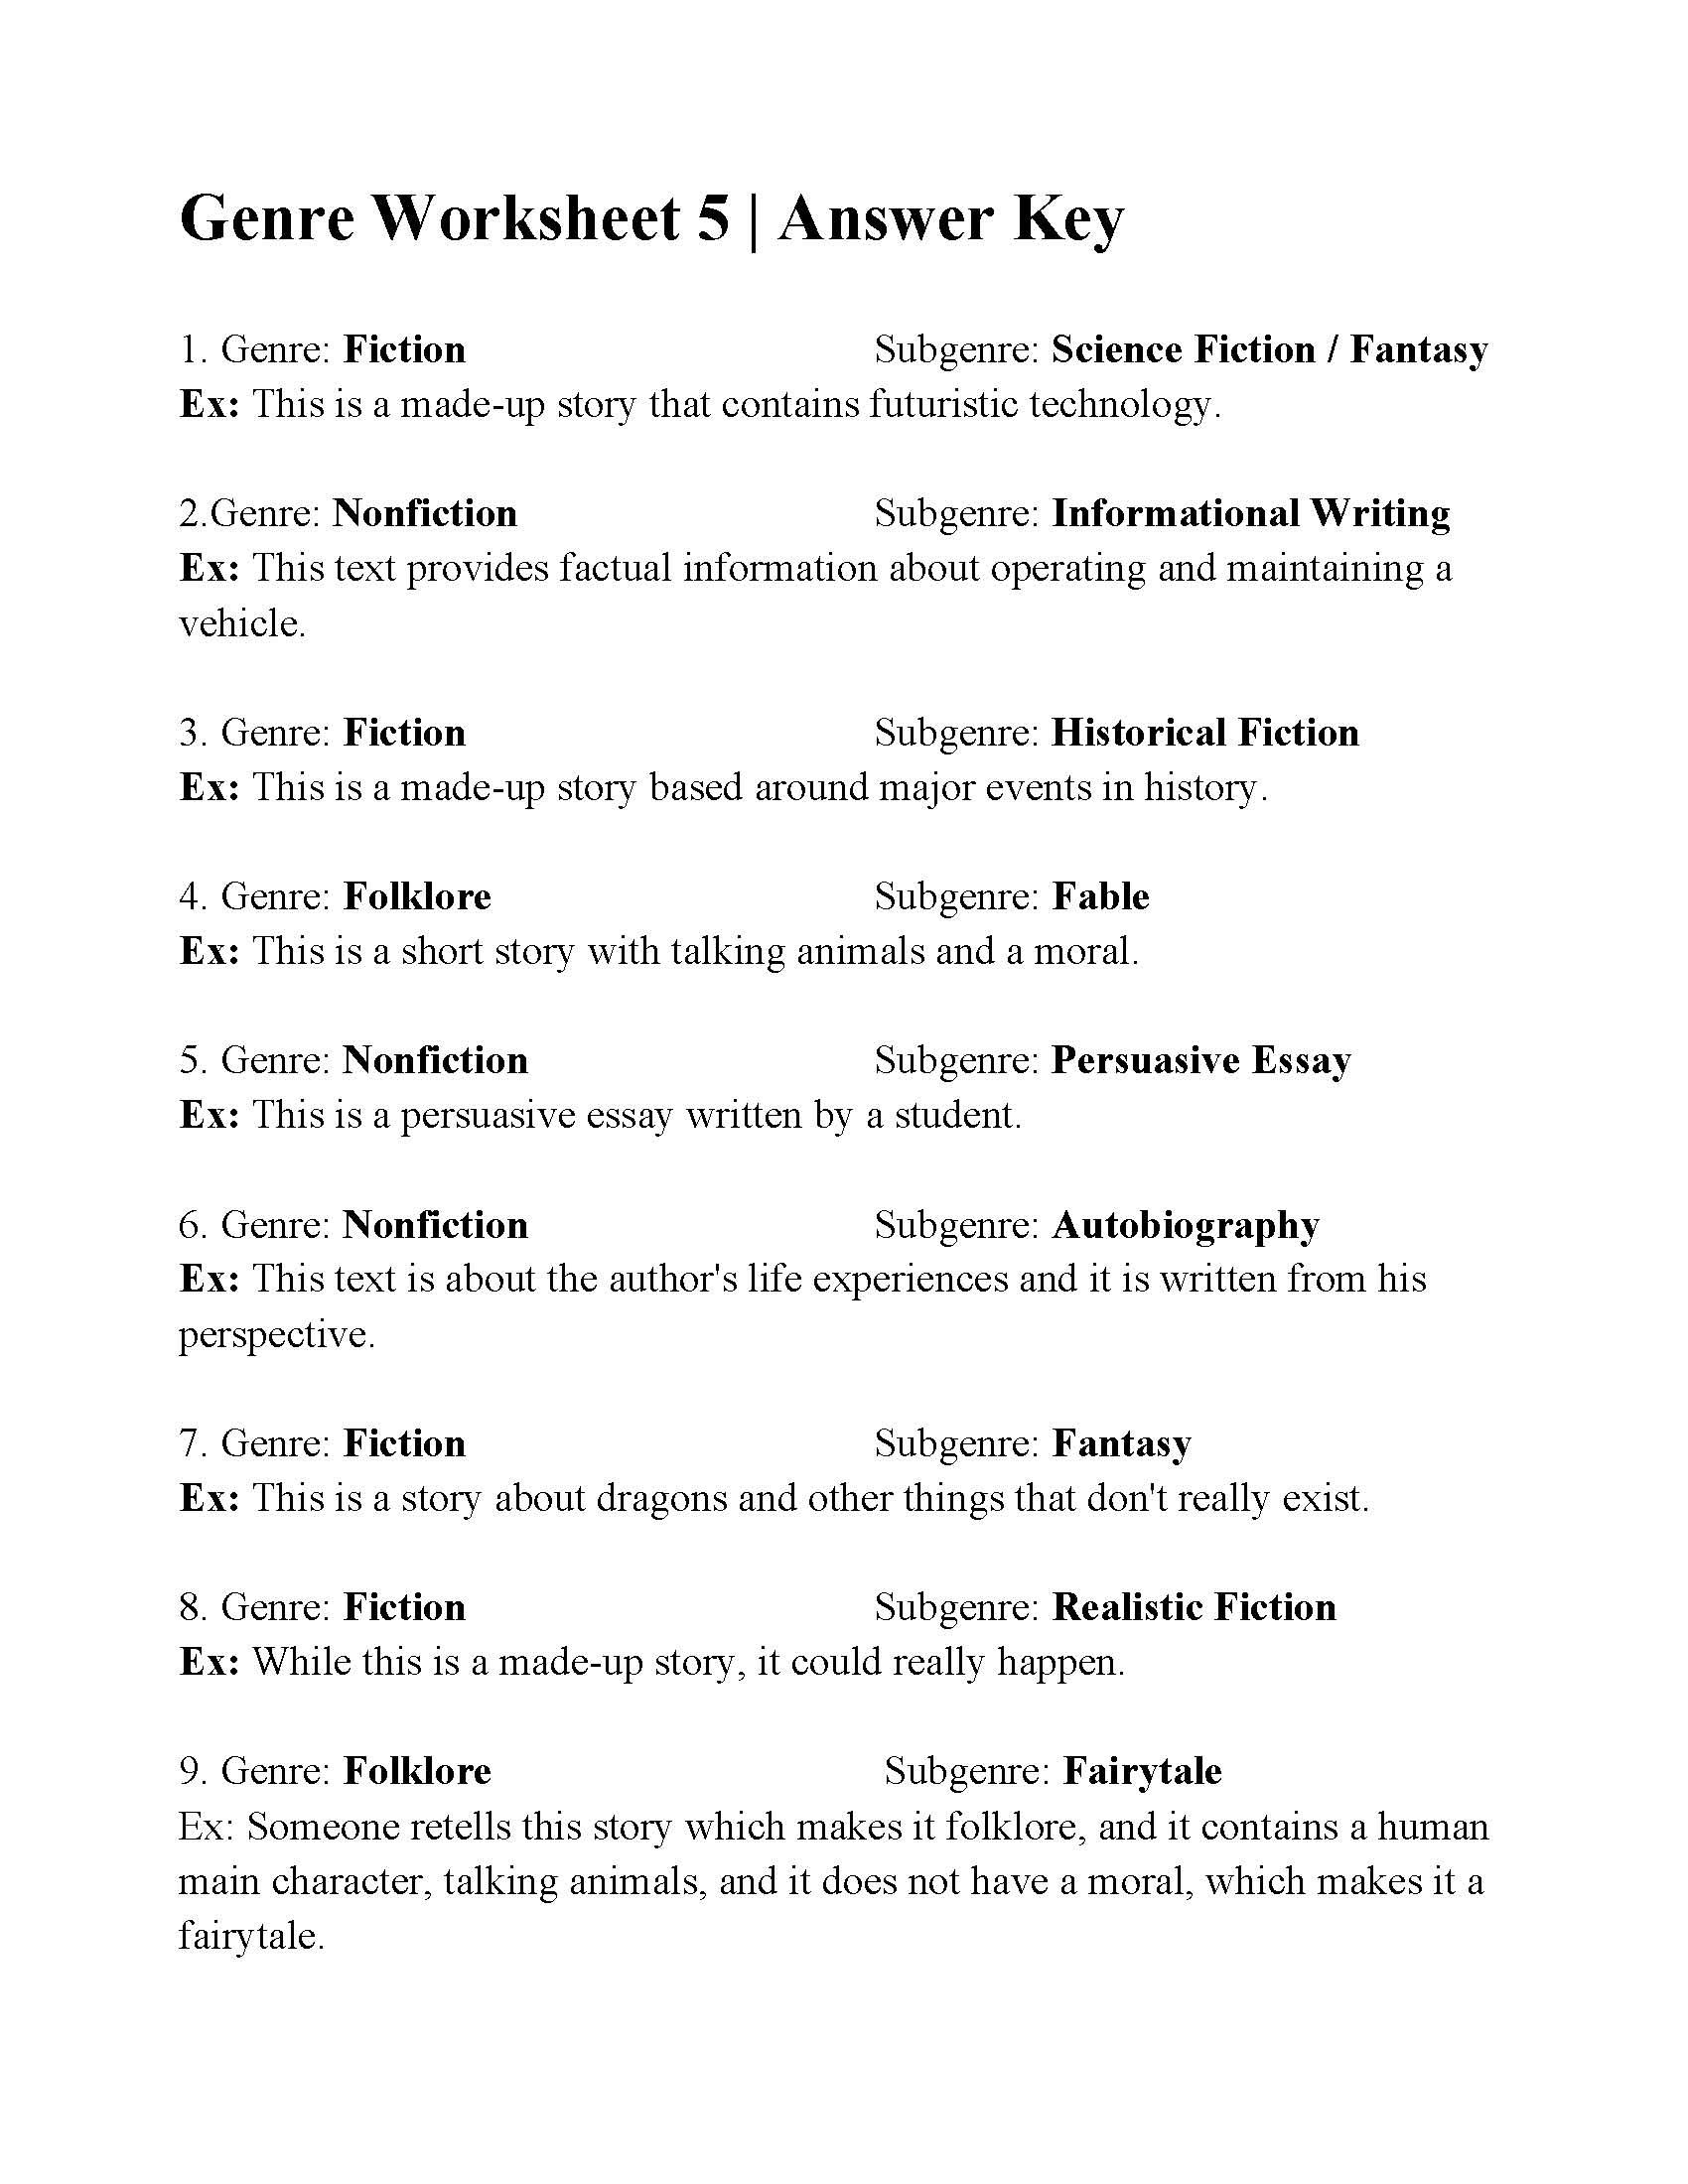 This is the answer key for the Genre Worksheet 5.   Author's purpose  worksheet [ 2200 x 1700 Pixel ]